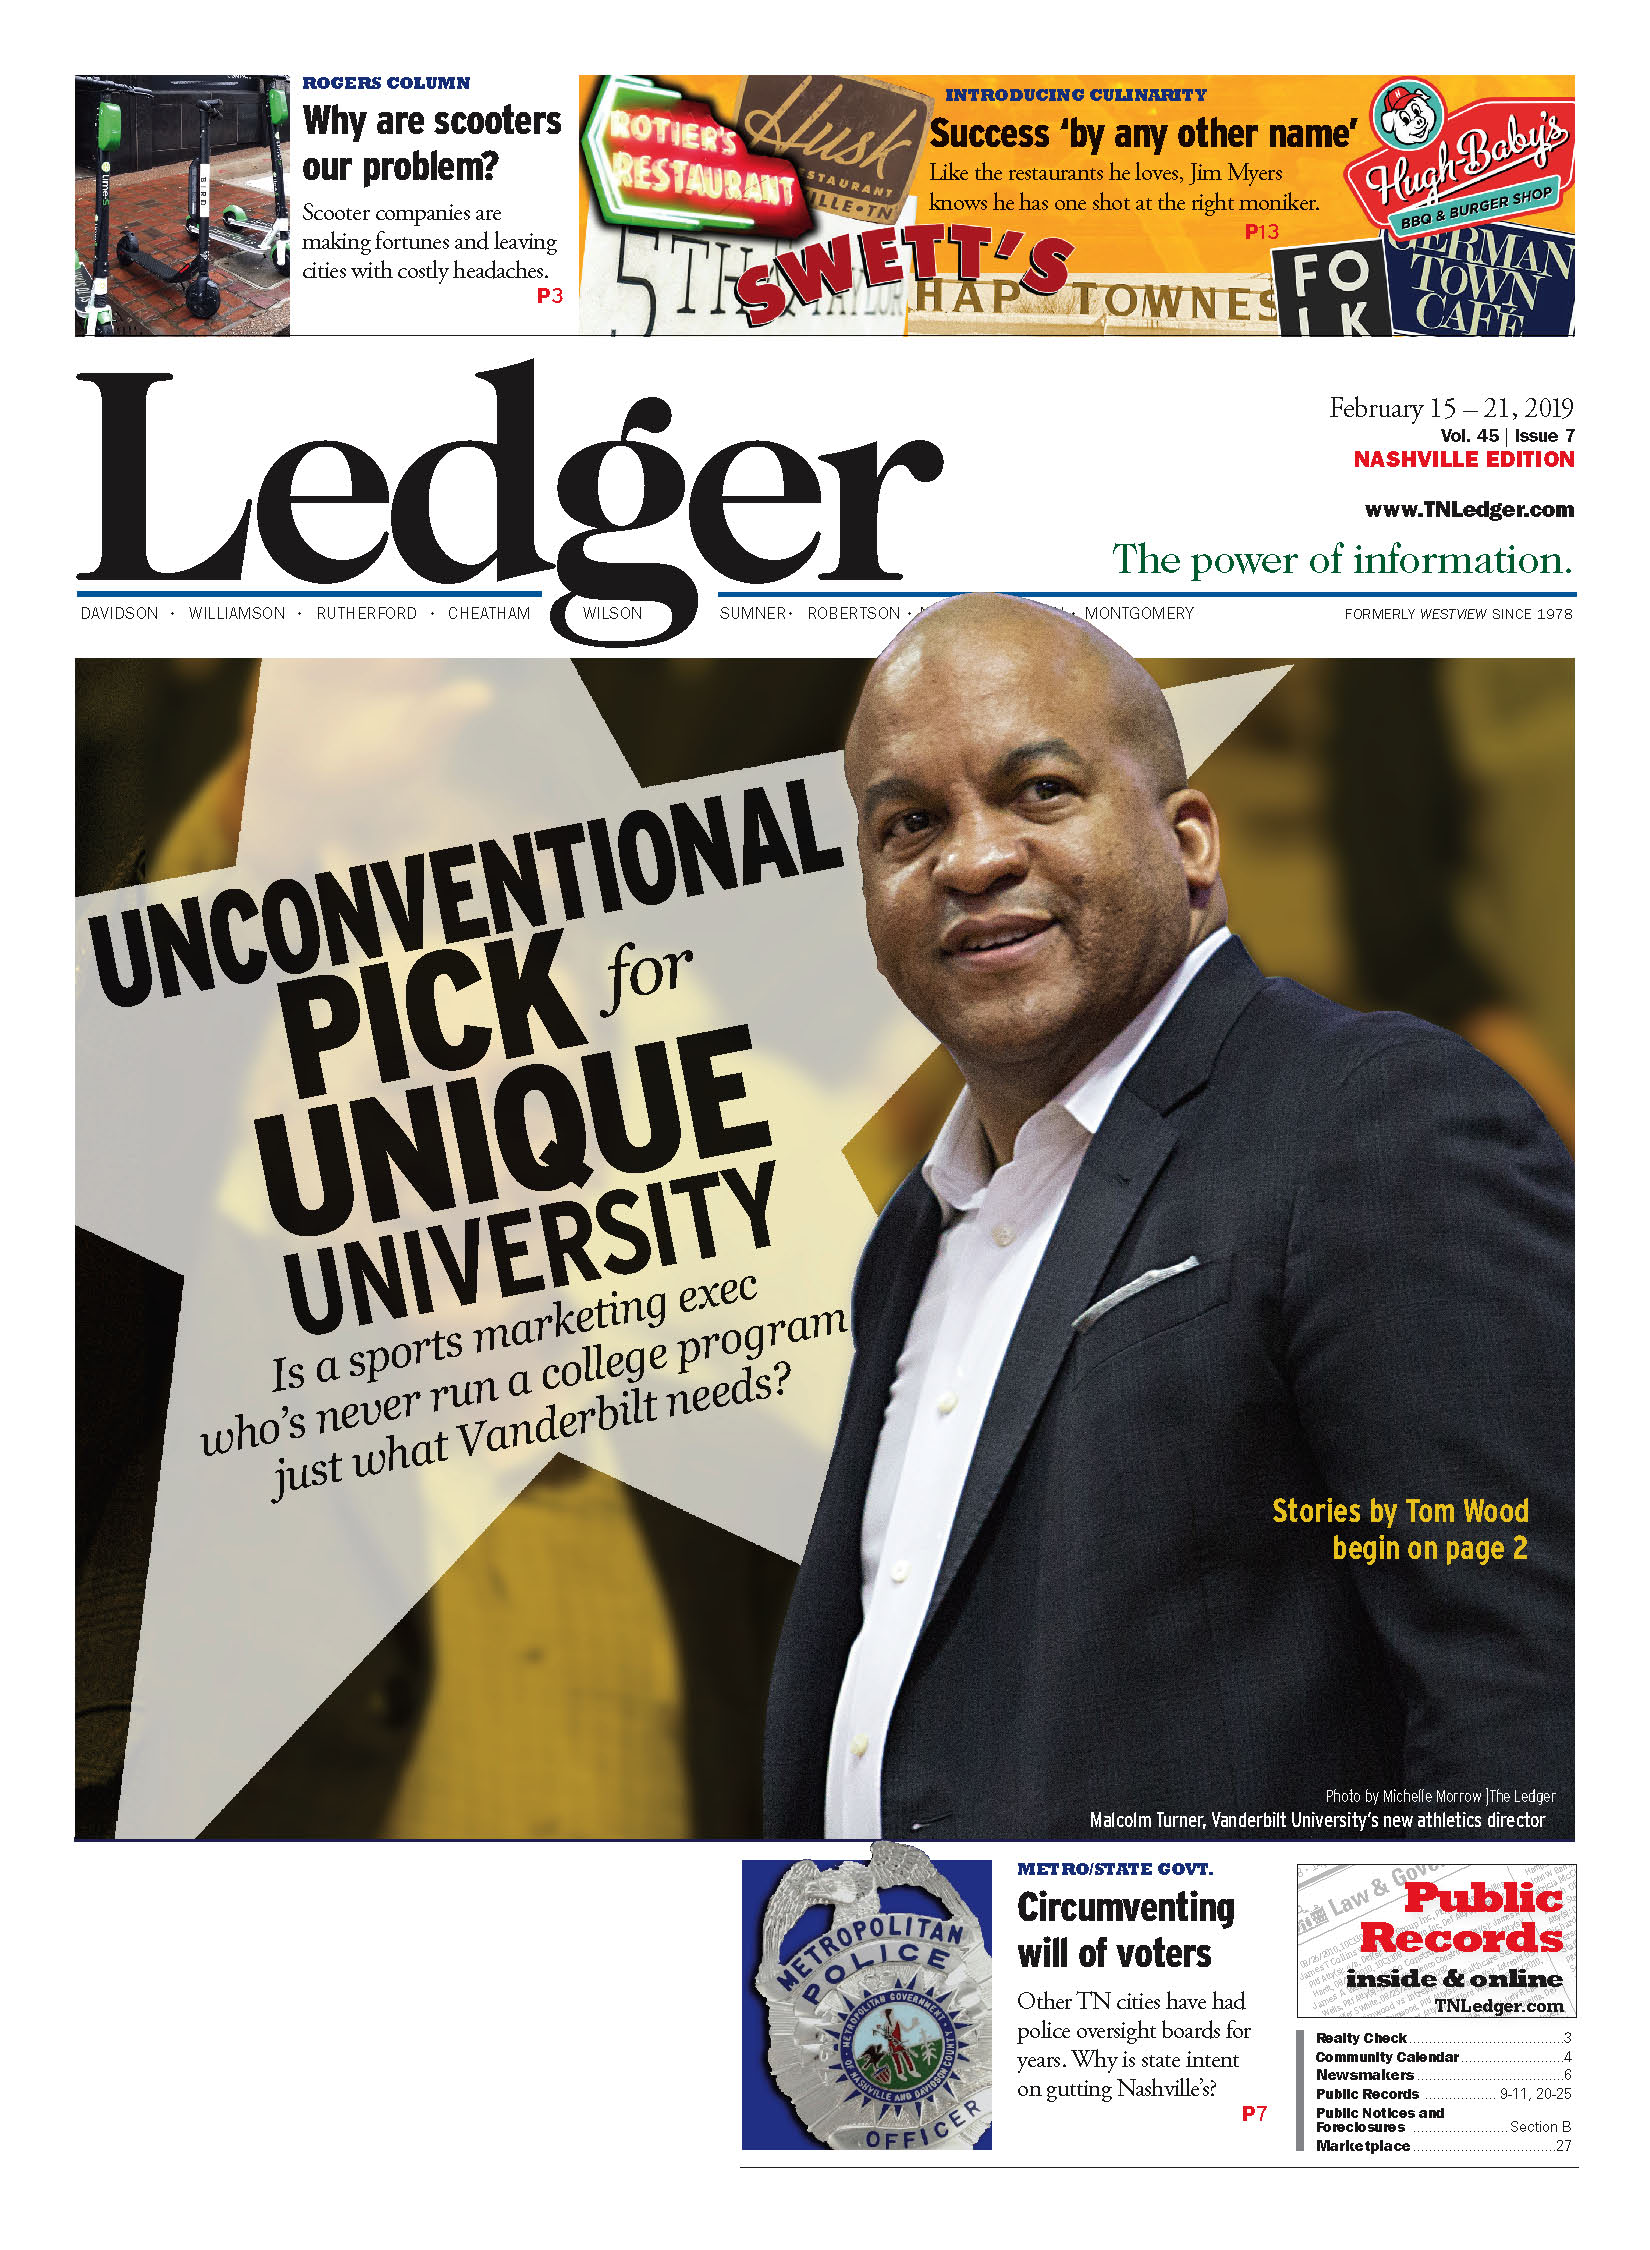 An unconventional pick for unique university - The Nashville Ledger